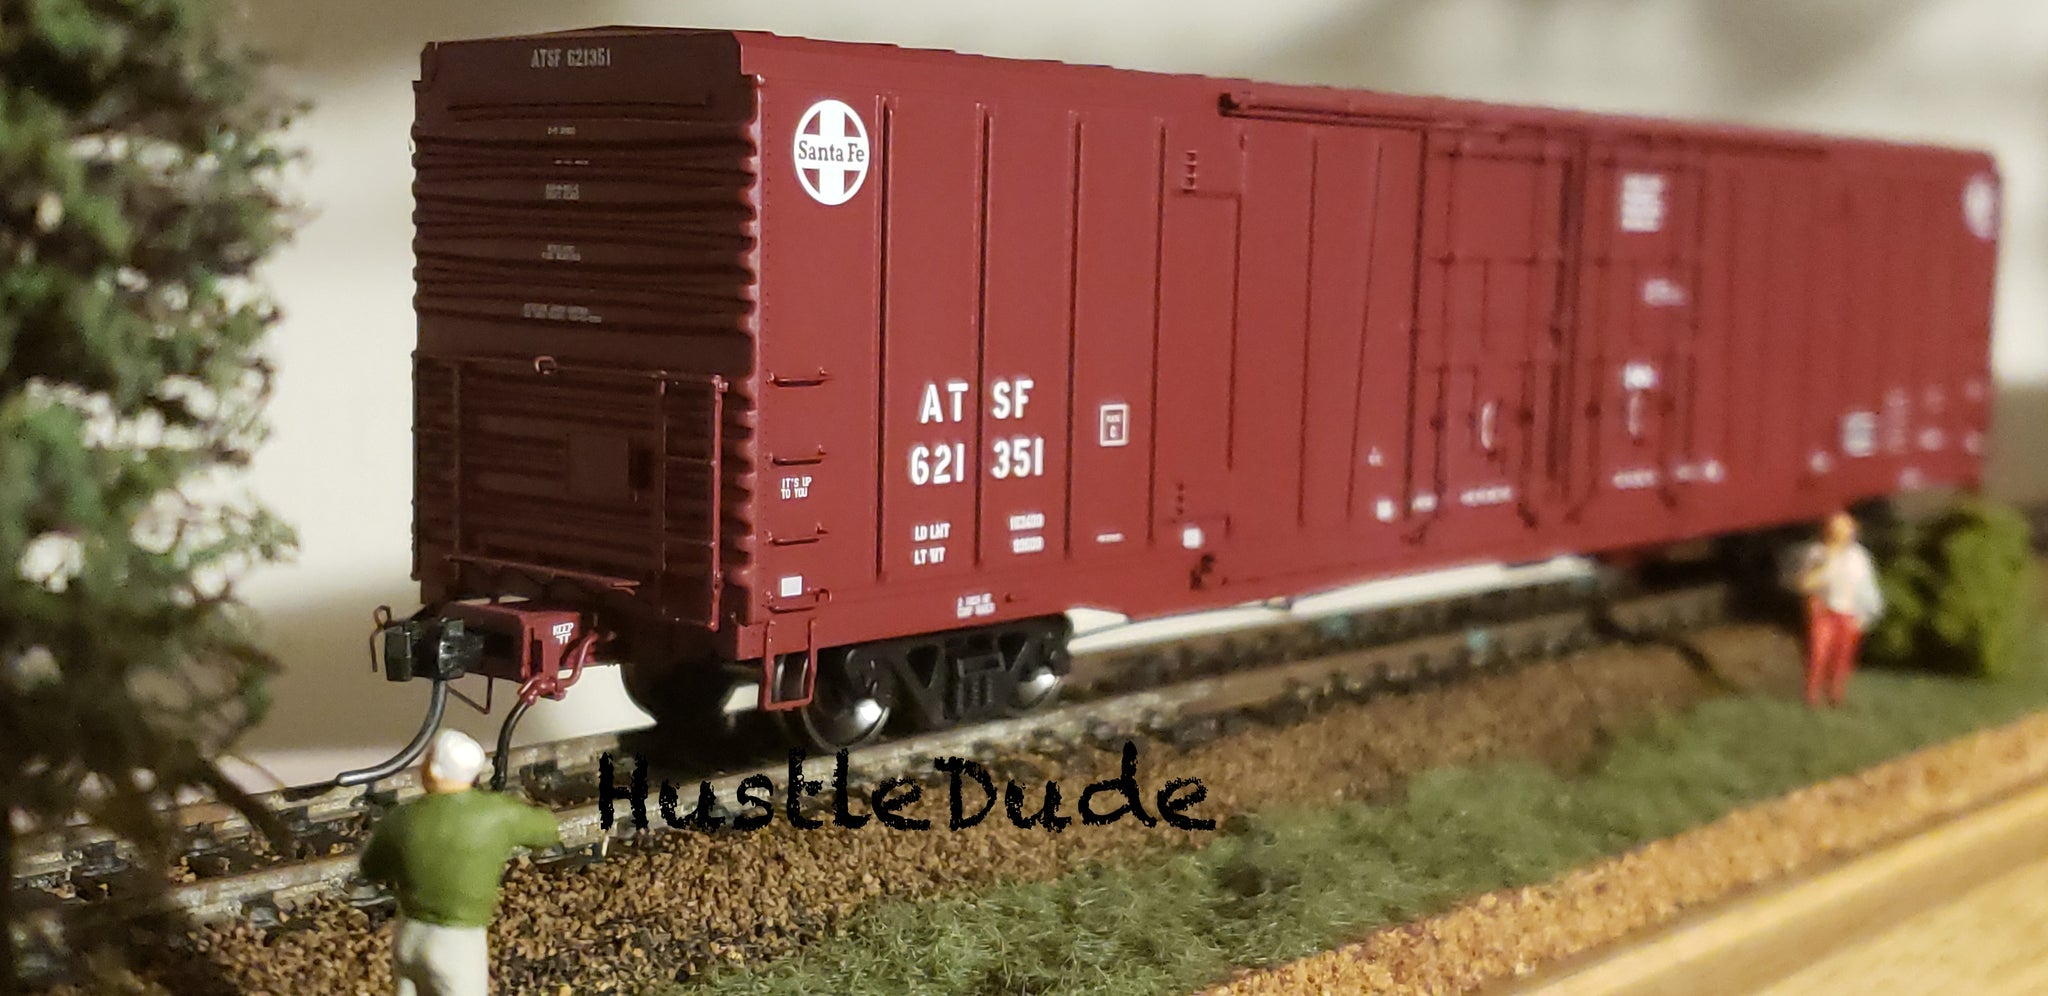 Atlas HO 20004936 BX-166 Box Car Santa Fe (24